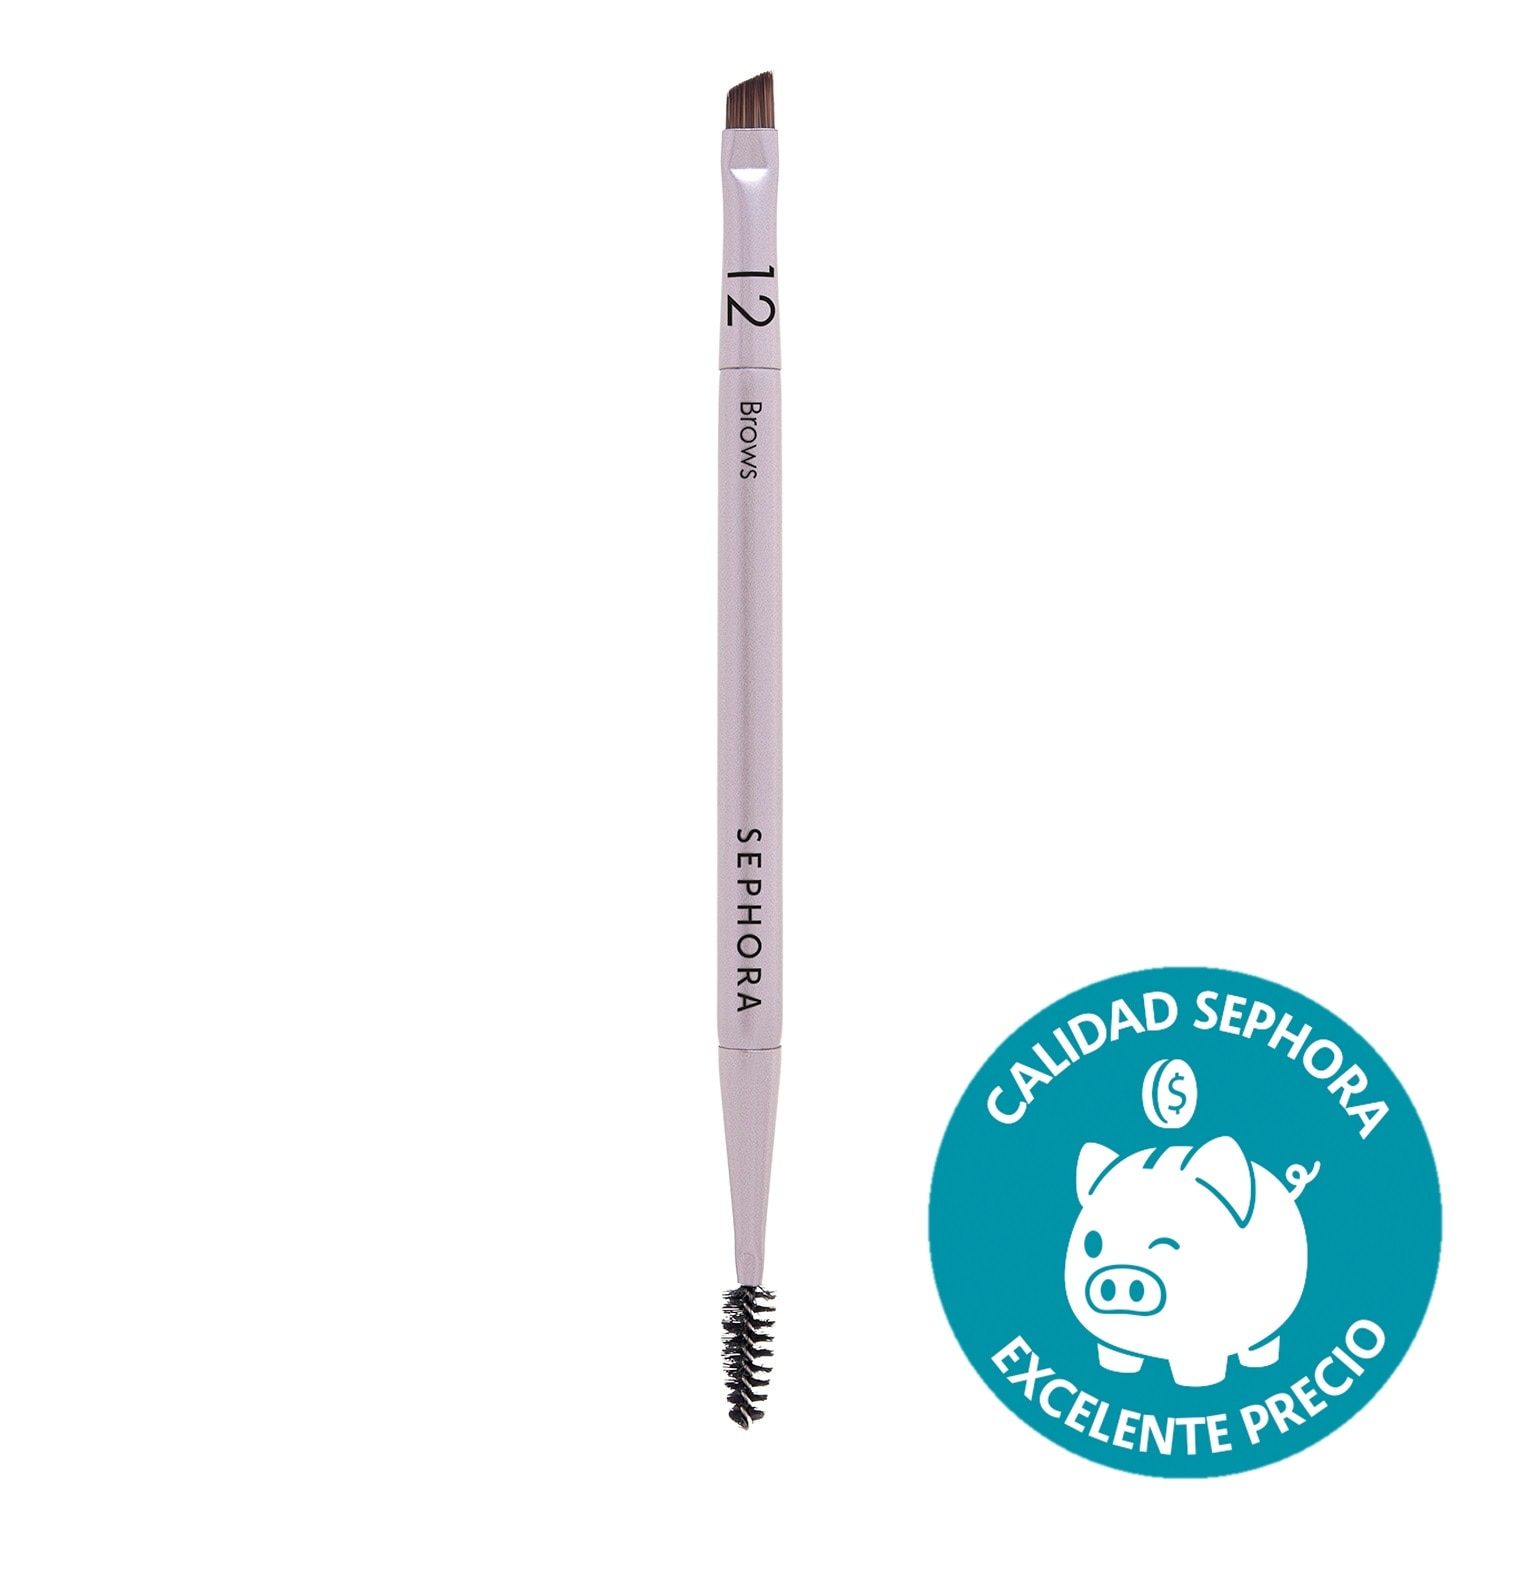 NEW CLASSIC BRUSH BROWS 12